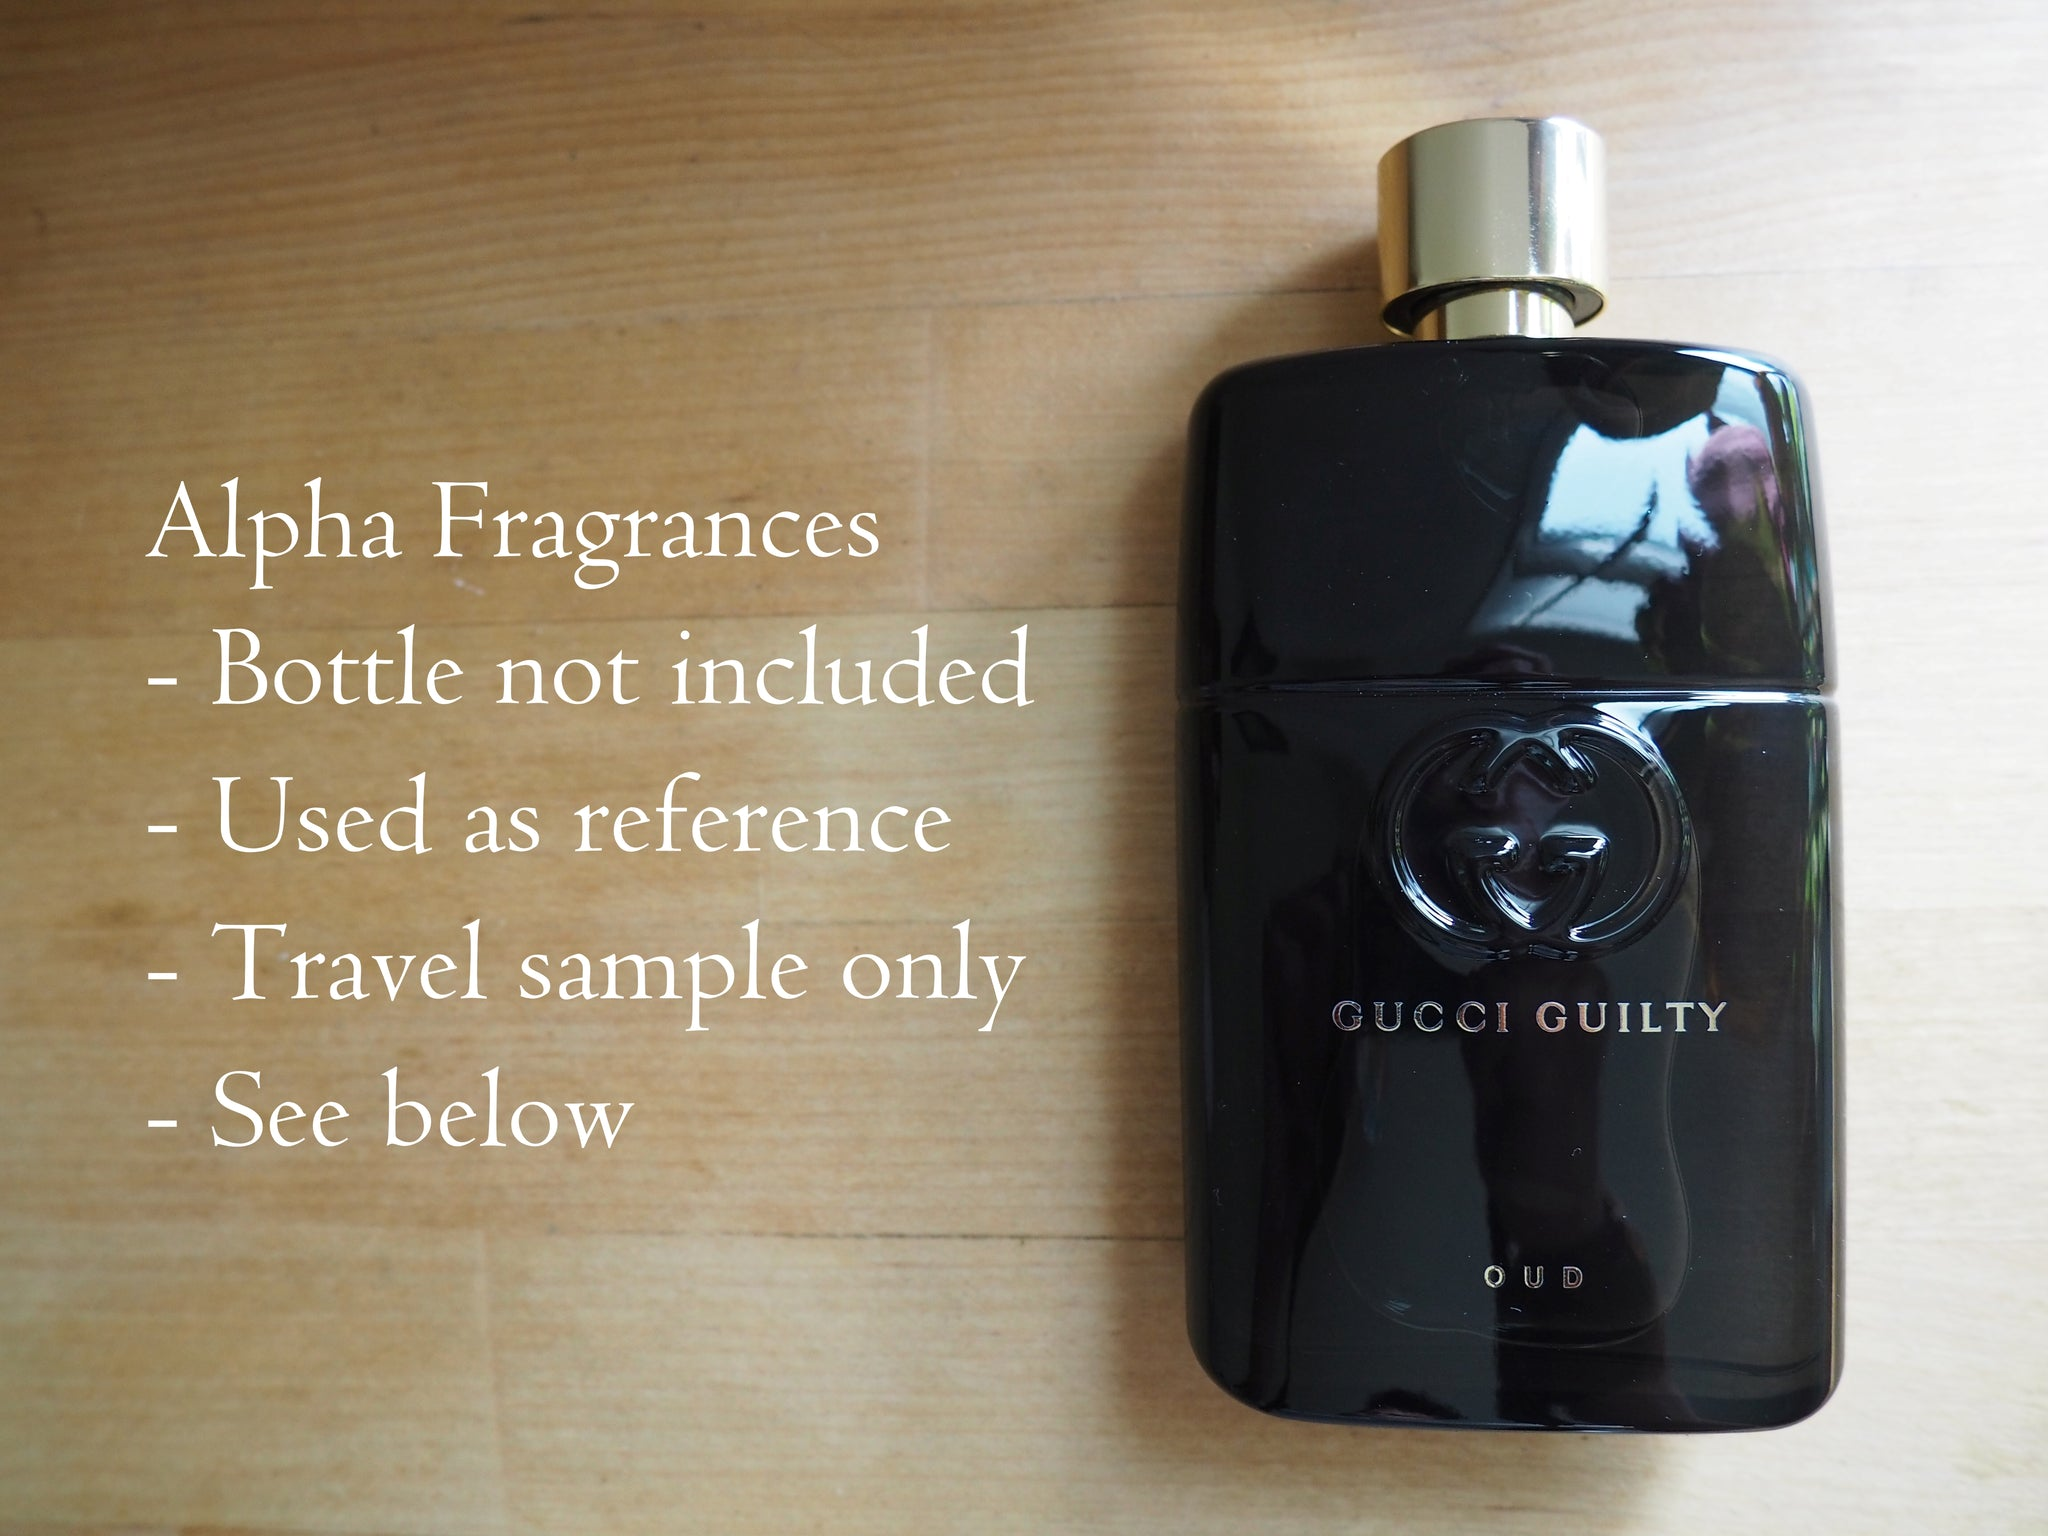 Gucci Guilty Oud Eau De Parfum Travel Sample Free Shipping Gxxci